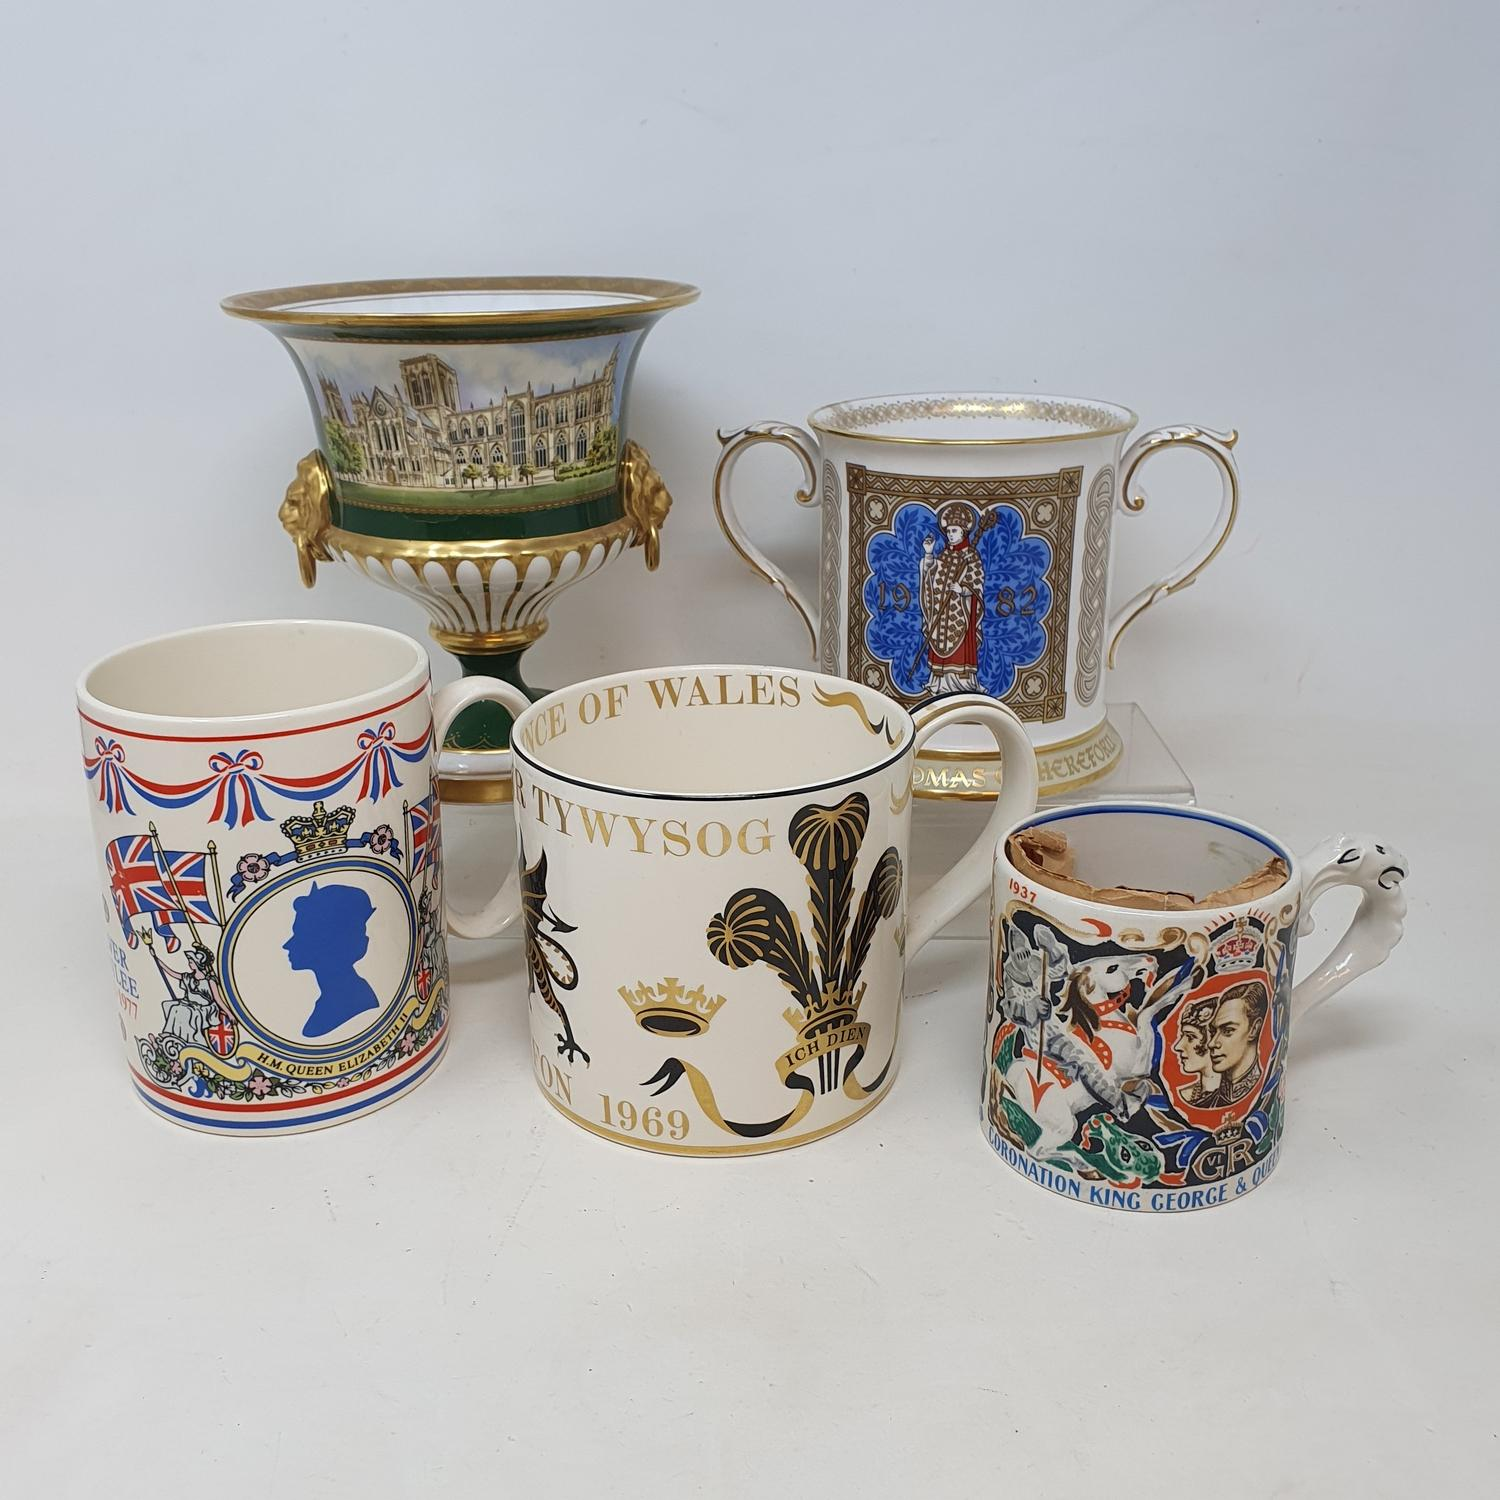 A group of Spode collectors' plates, in presentation boxes, and various other commemorative wares (